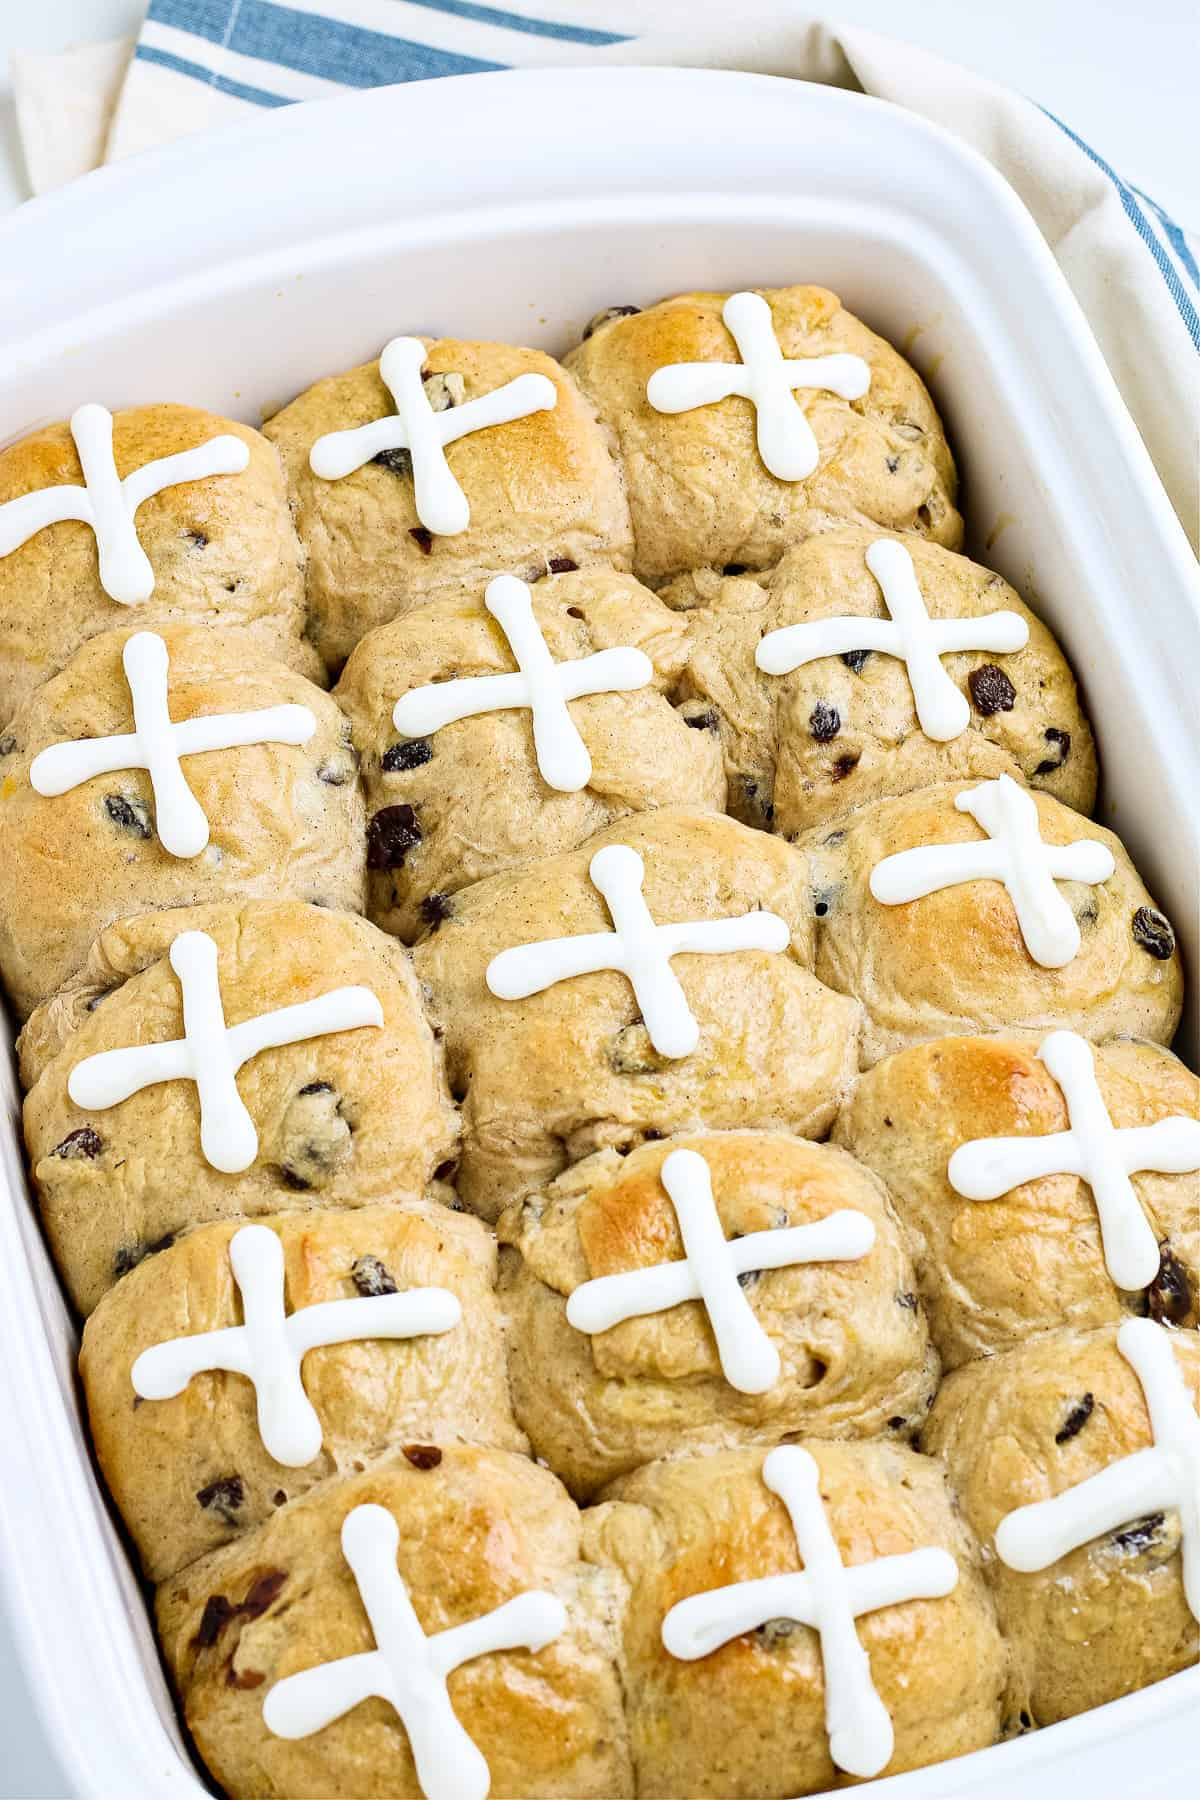 Pan of hot cross buns topped with an icing of a cross